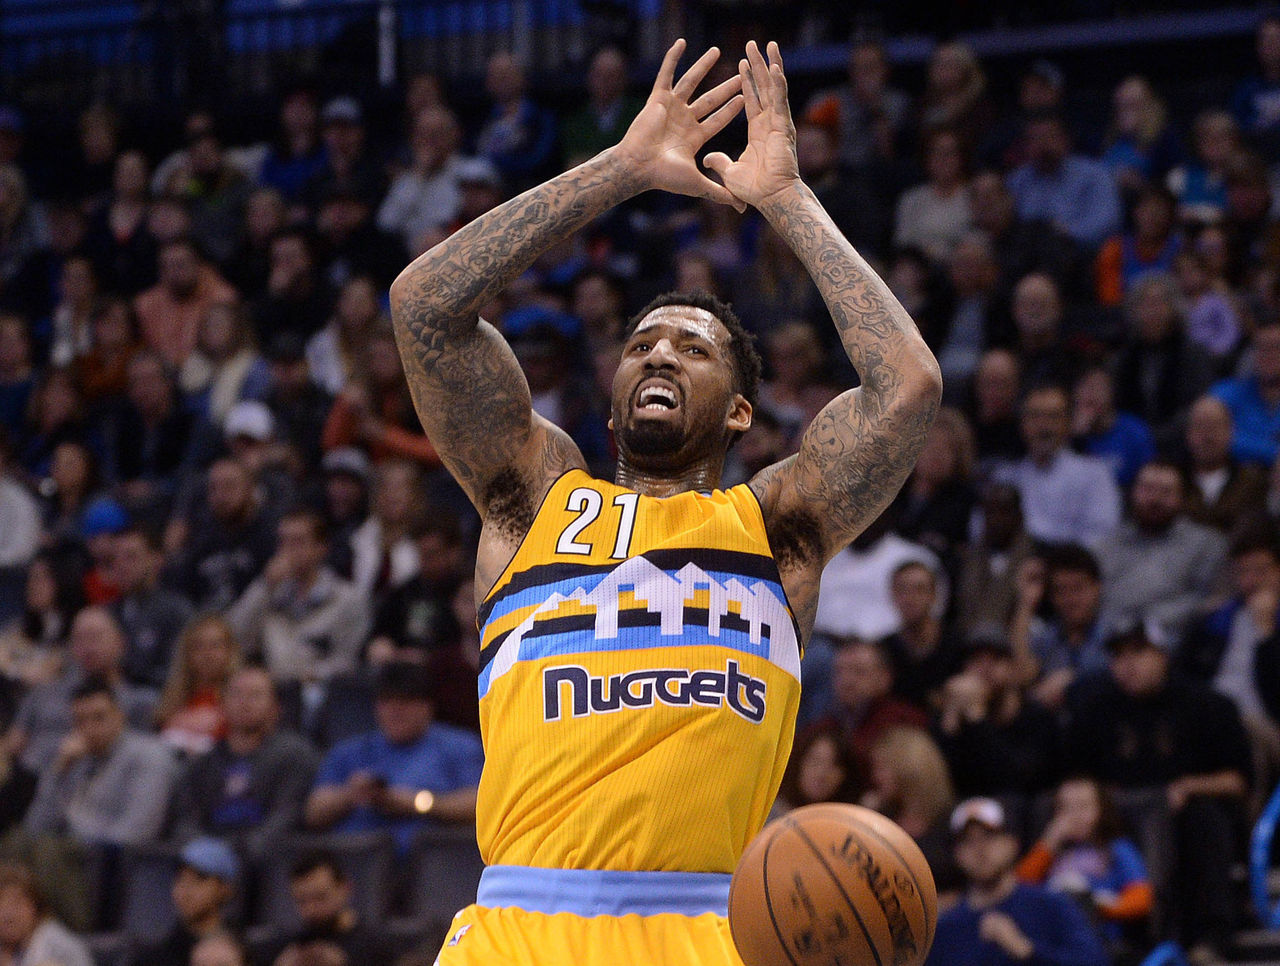 Cropped 2017 01 08t021716z 1253950782 nocid rtrmadp 3 nba denver nuggets at oklahoma city thunder